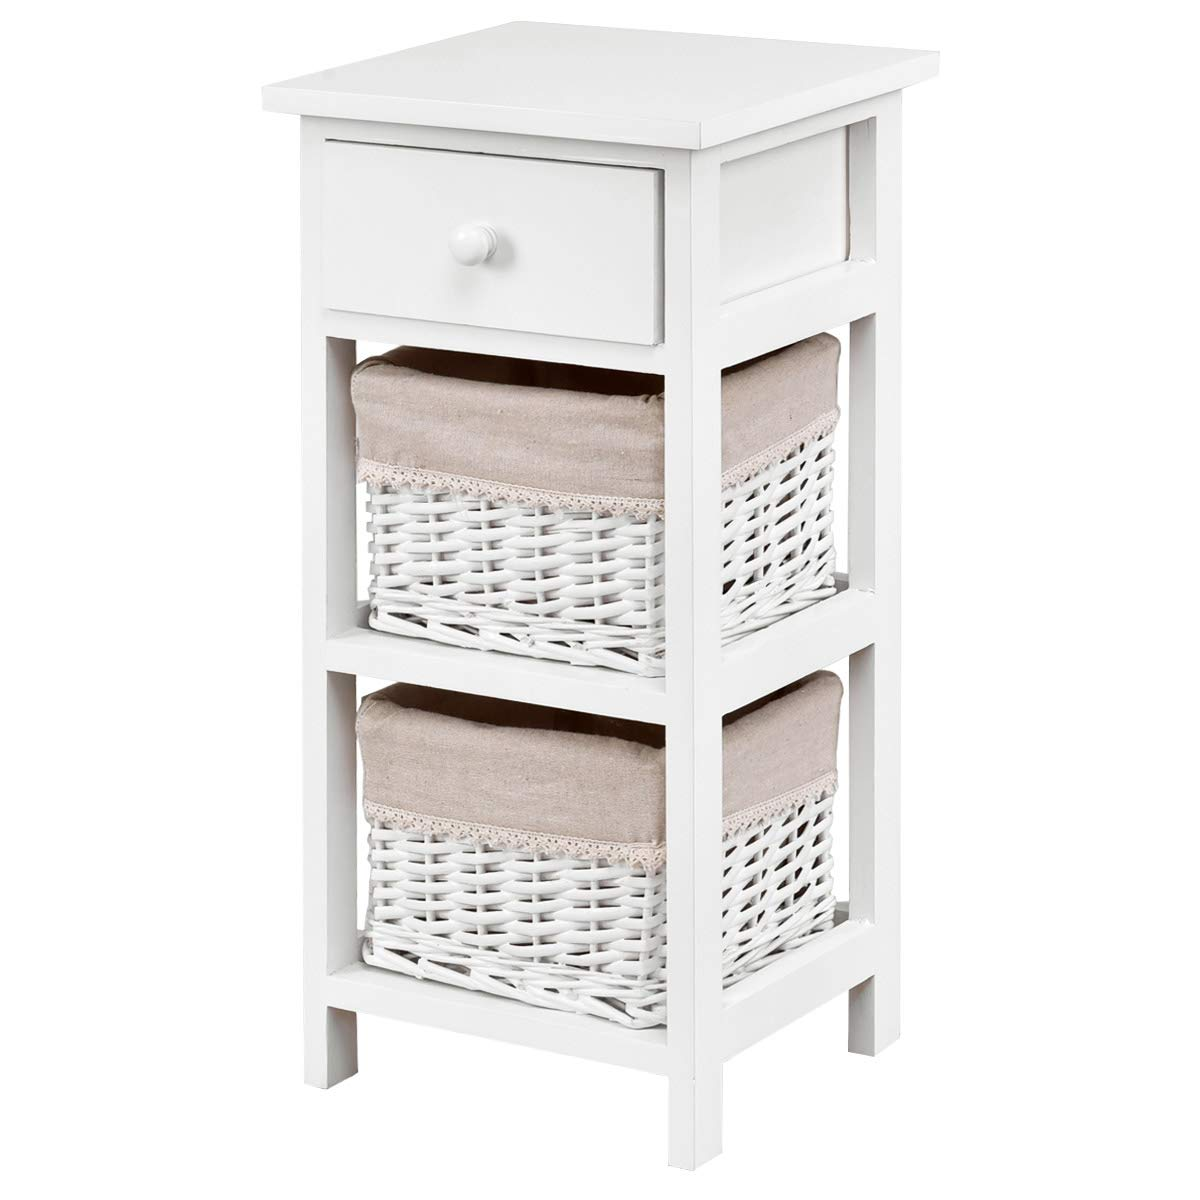 Giantex Nightstand Wooden W/Drawer and Two Rattan Baskets for Bedroom, Living Room Home Furniture Storage Organizer Chest Cabinet Bedside End Table (1)